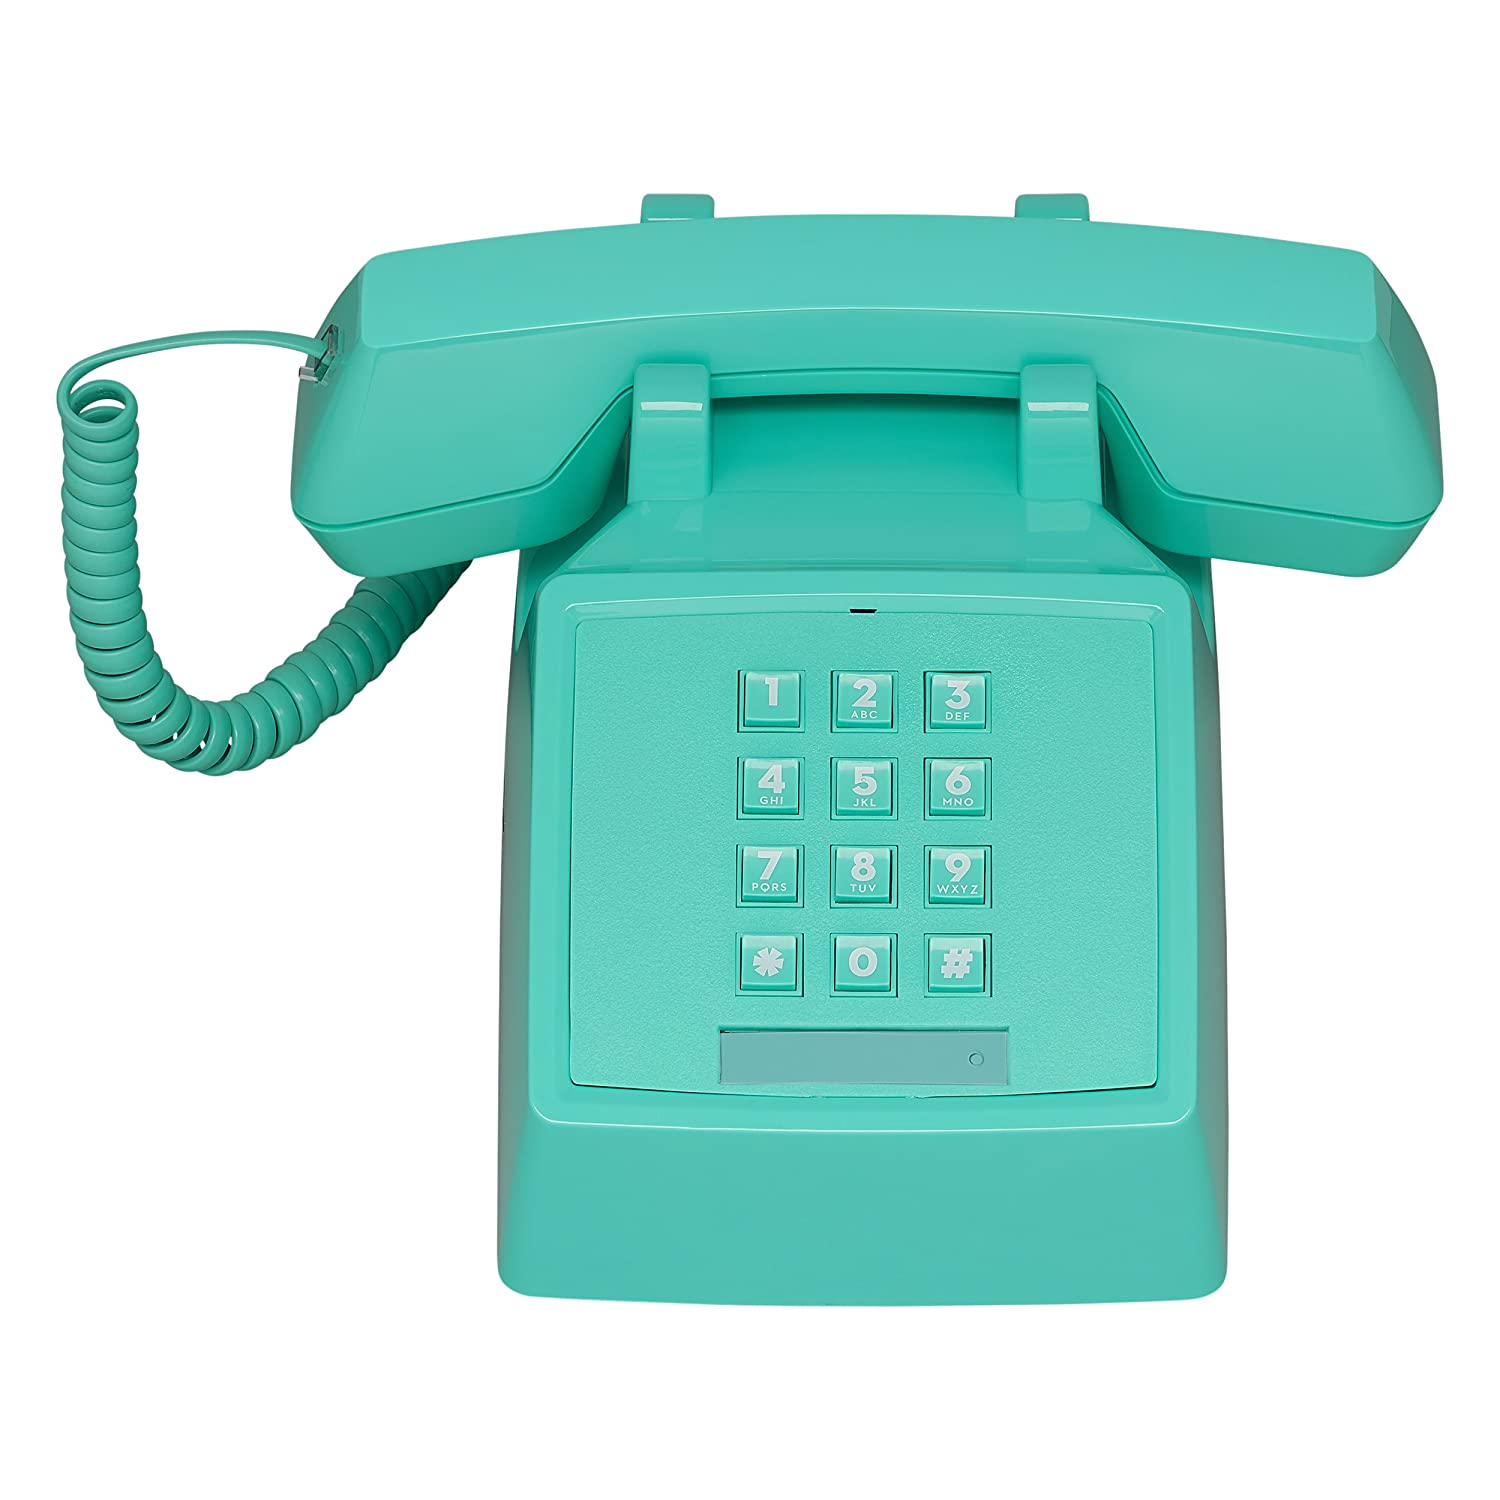 Wild Wood 2500 Classic Retro 1980s Style Corded Landline Phone with Push Buttons, Miami Turquoise Wild and Wolf ATP068